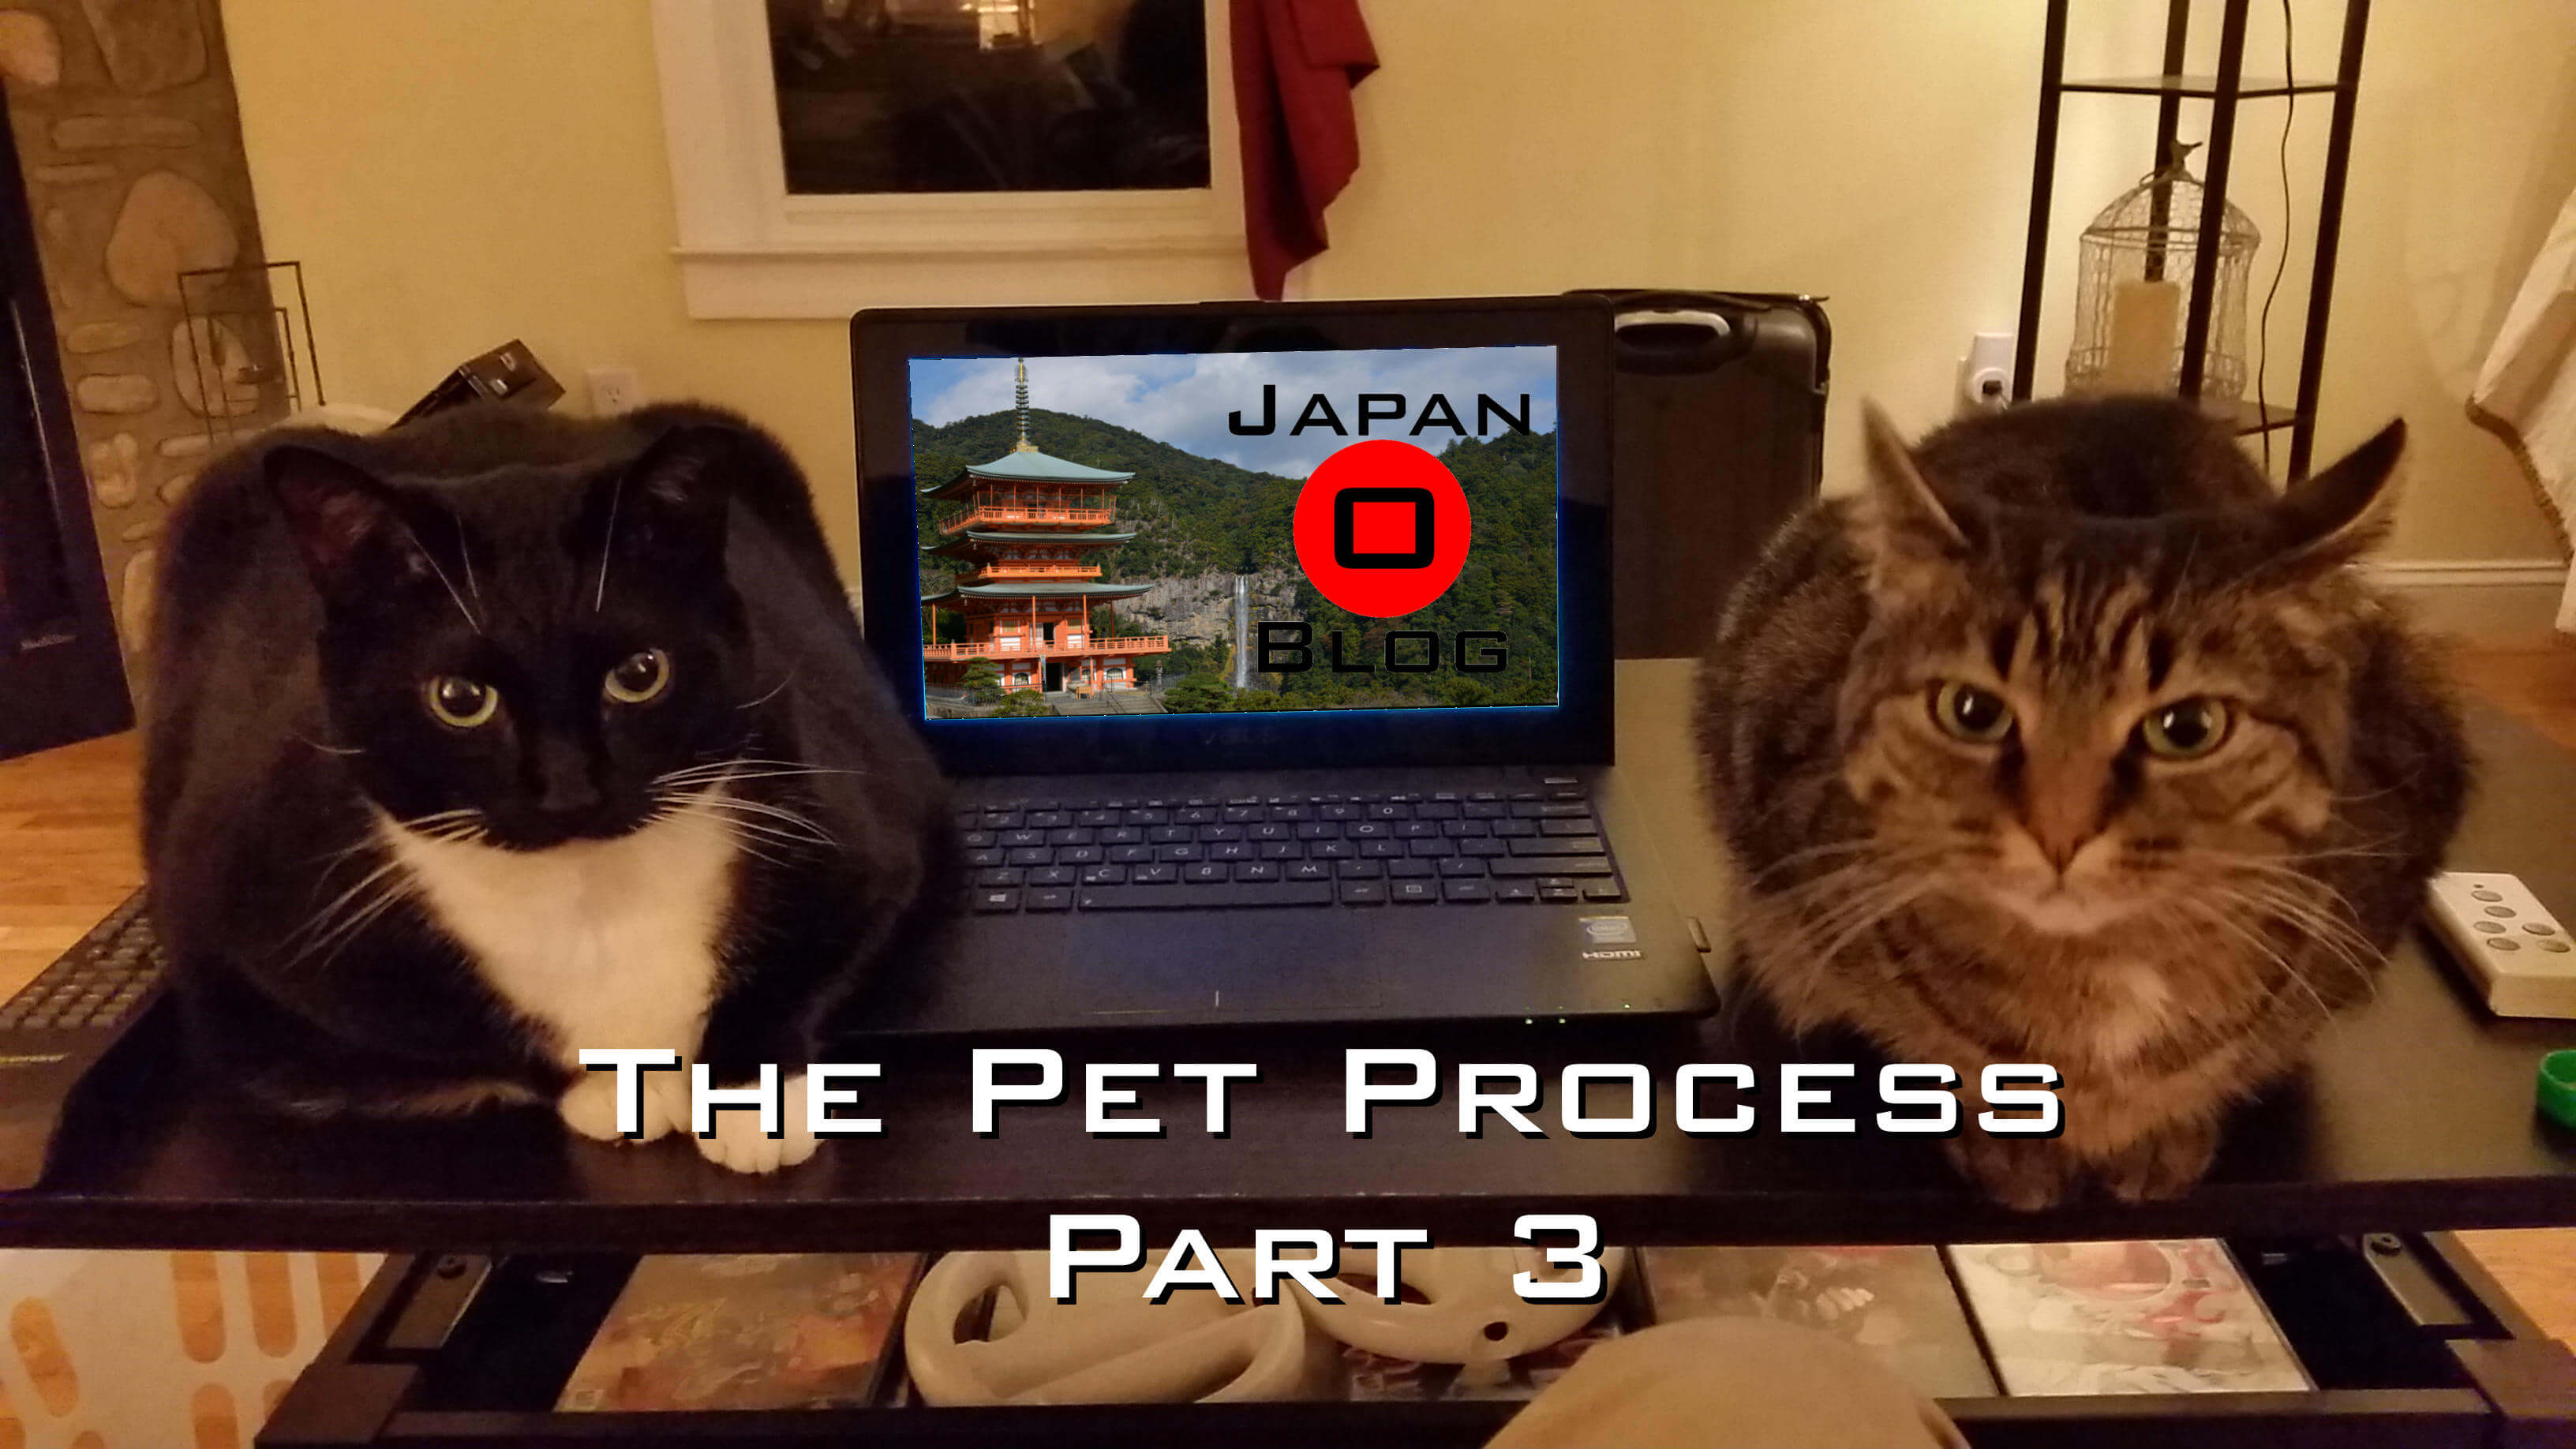 Pet Process Part 3